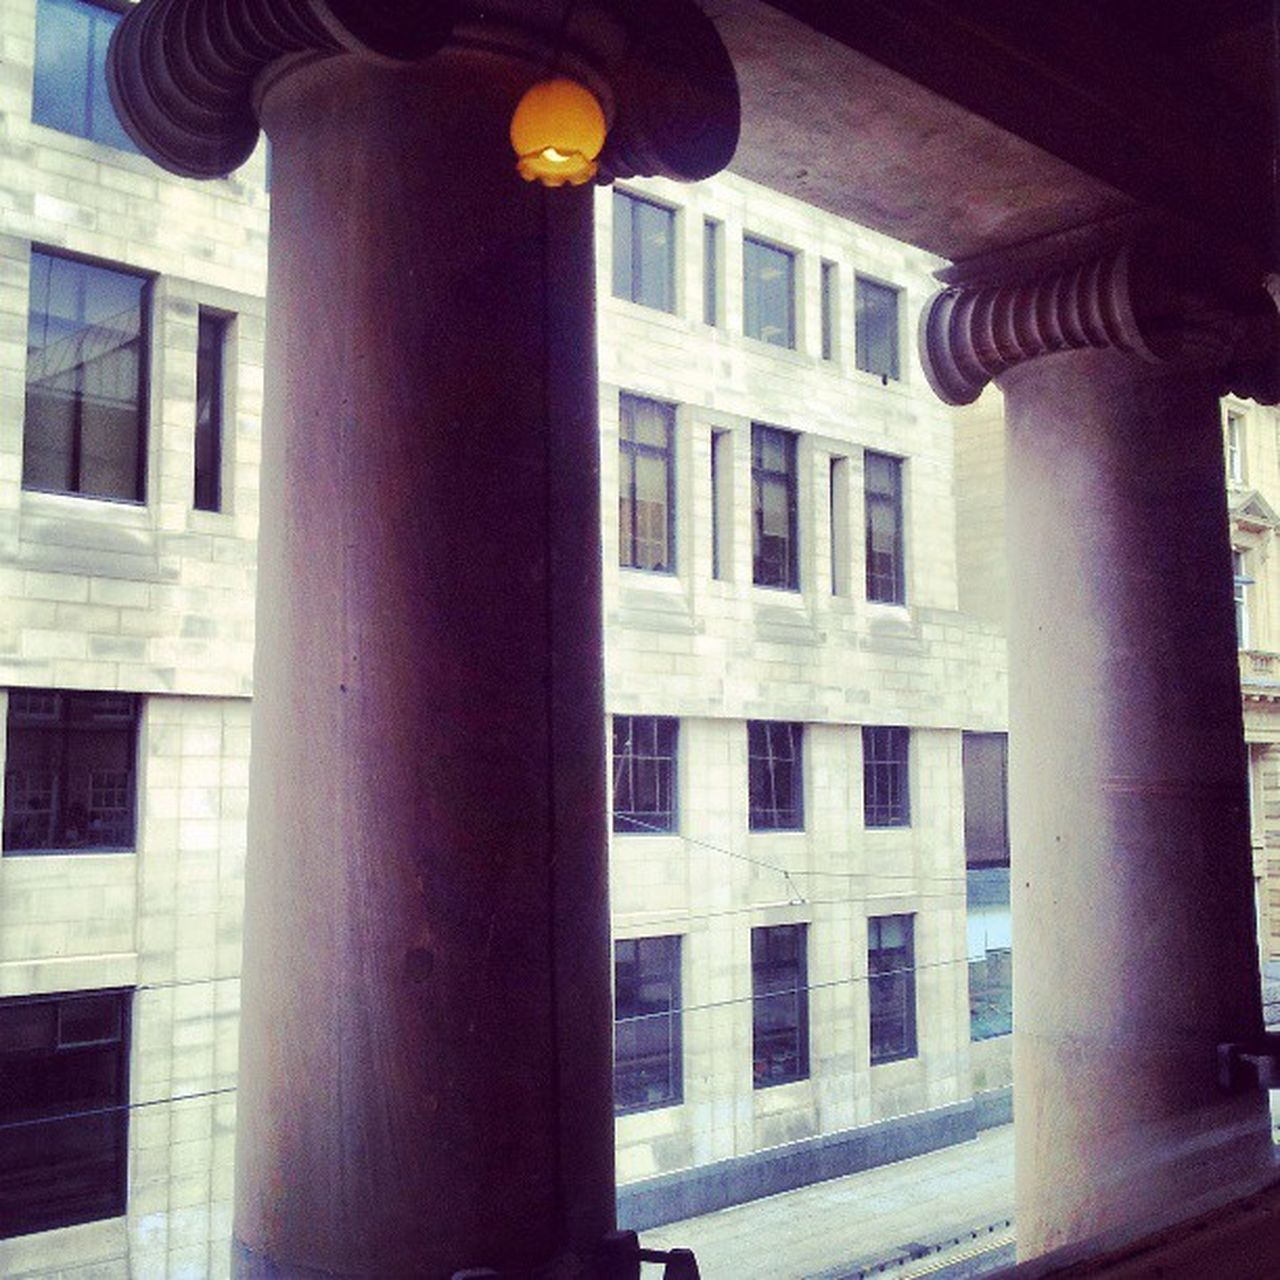 architecture, window, built structure, building exterior, architectural column, indoors, day, no people